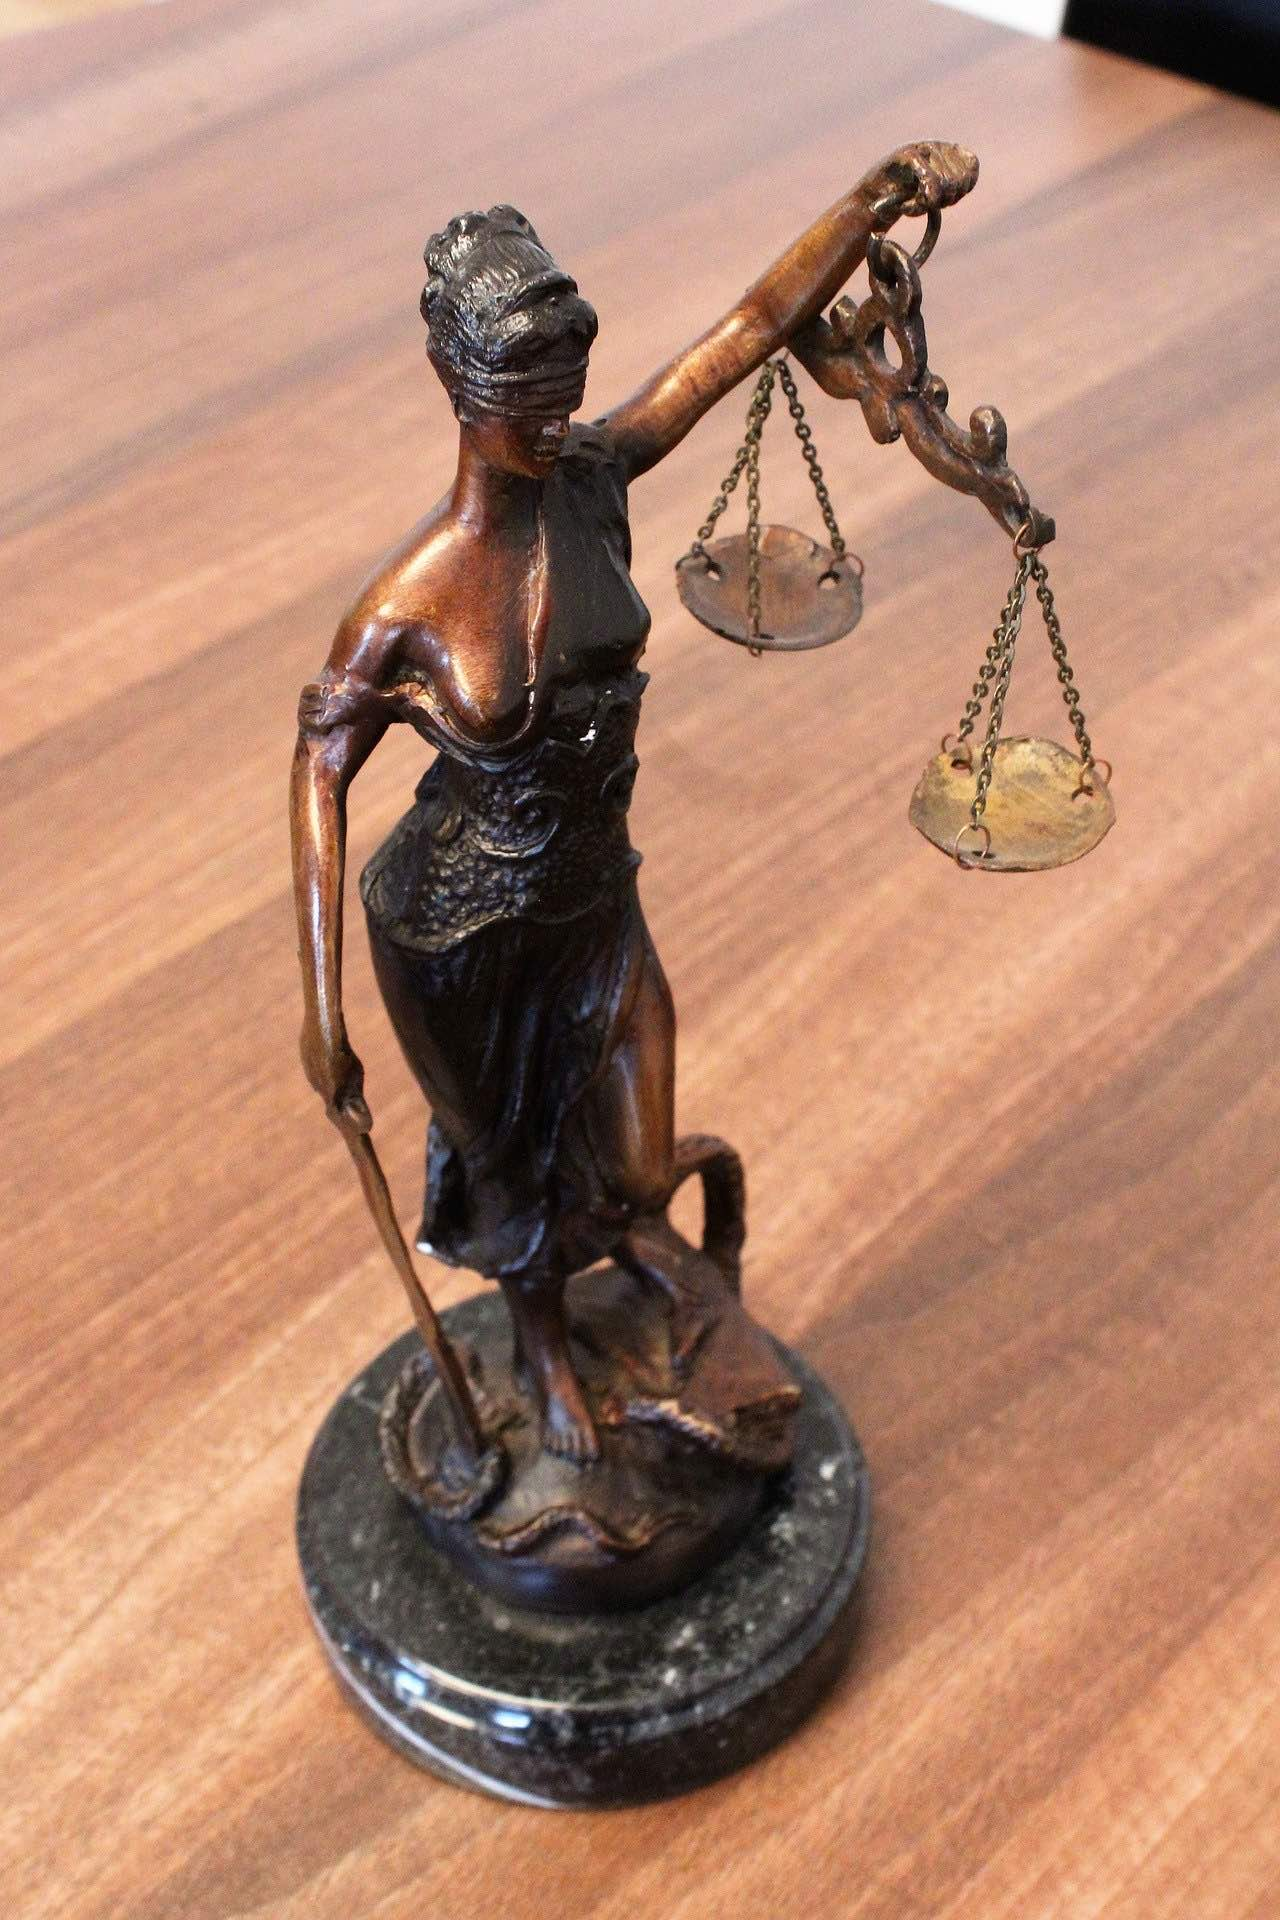 Lady Justice holding scales on a wooden table on the Archangel Law Group website homepage